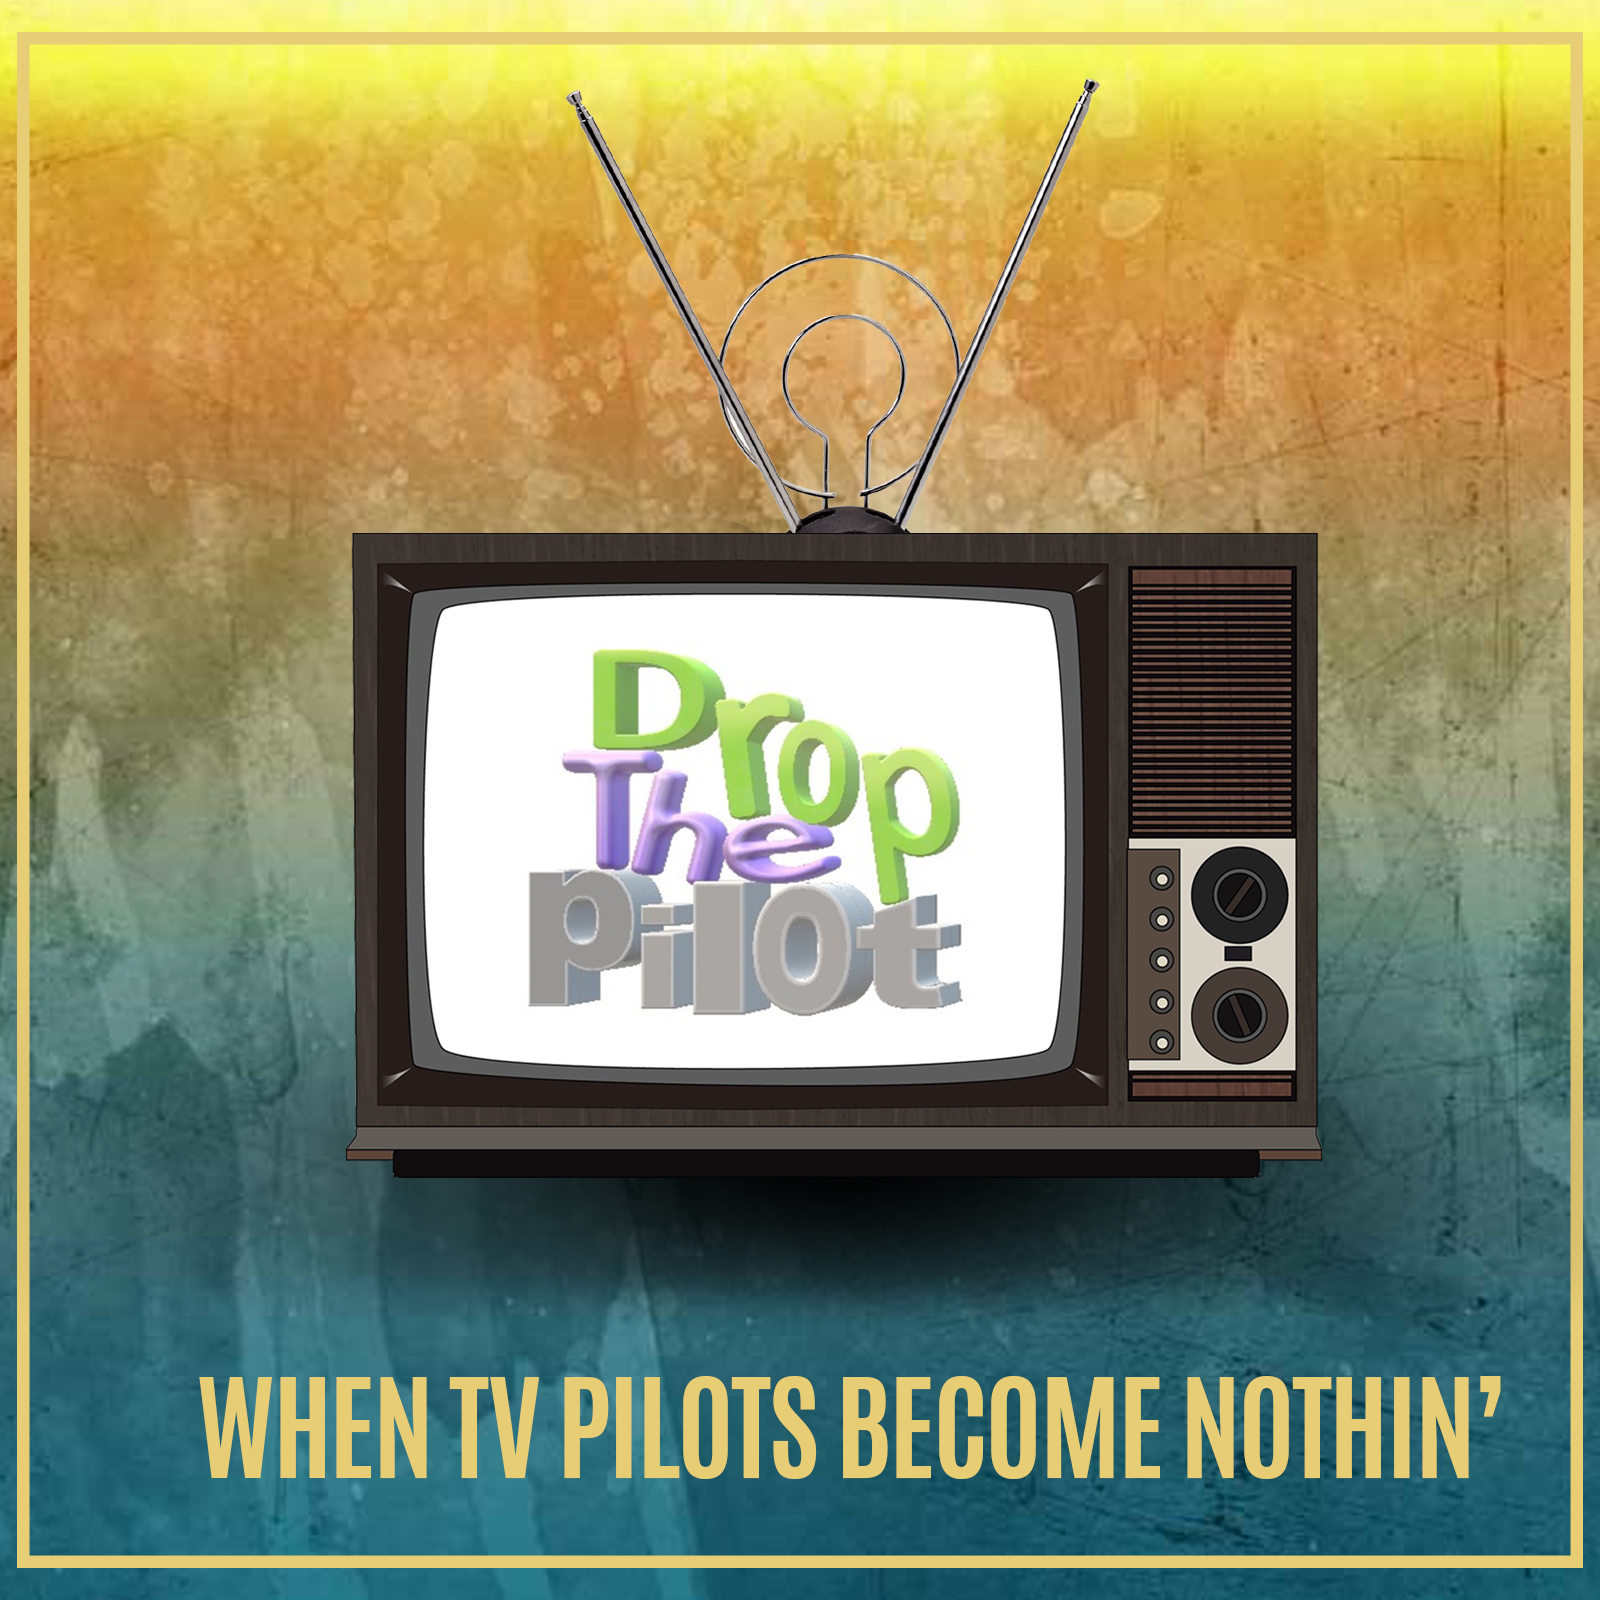 https://i.ibb.co/Fs7nfZv/drop-the-pilot-Logo.jpg